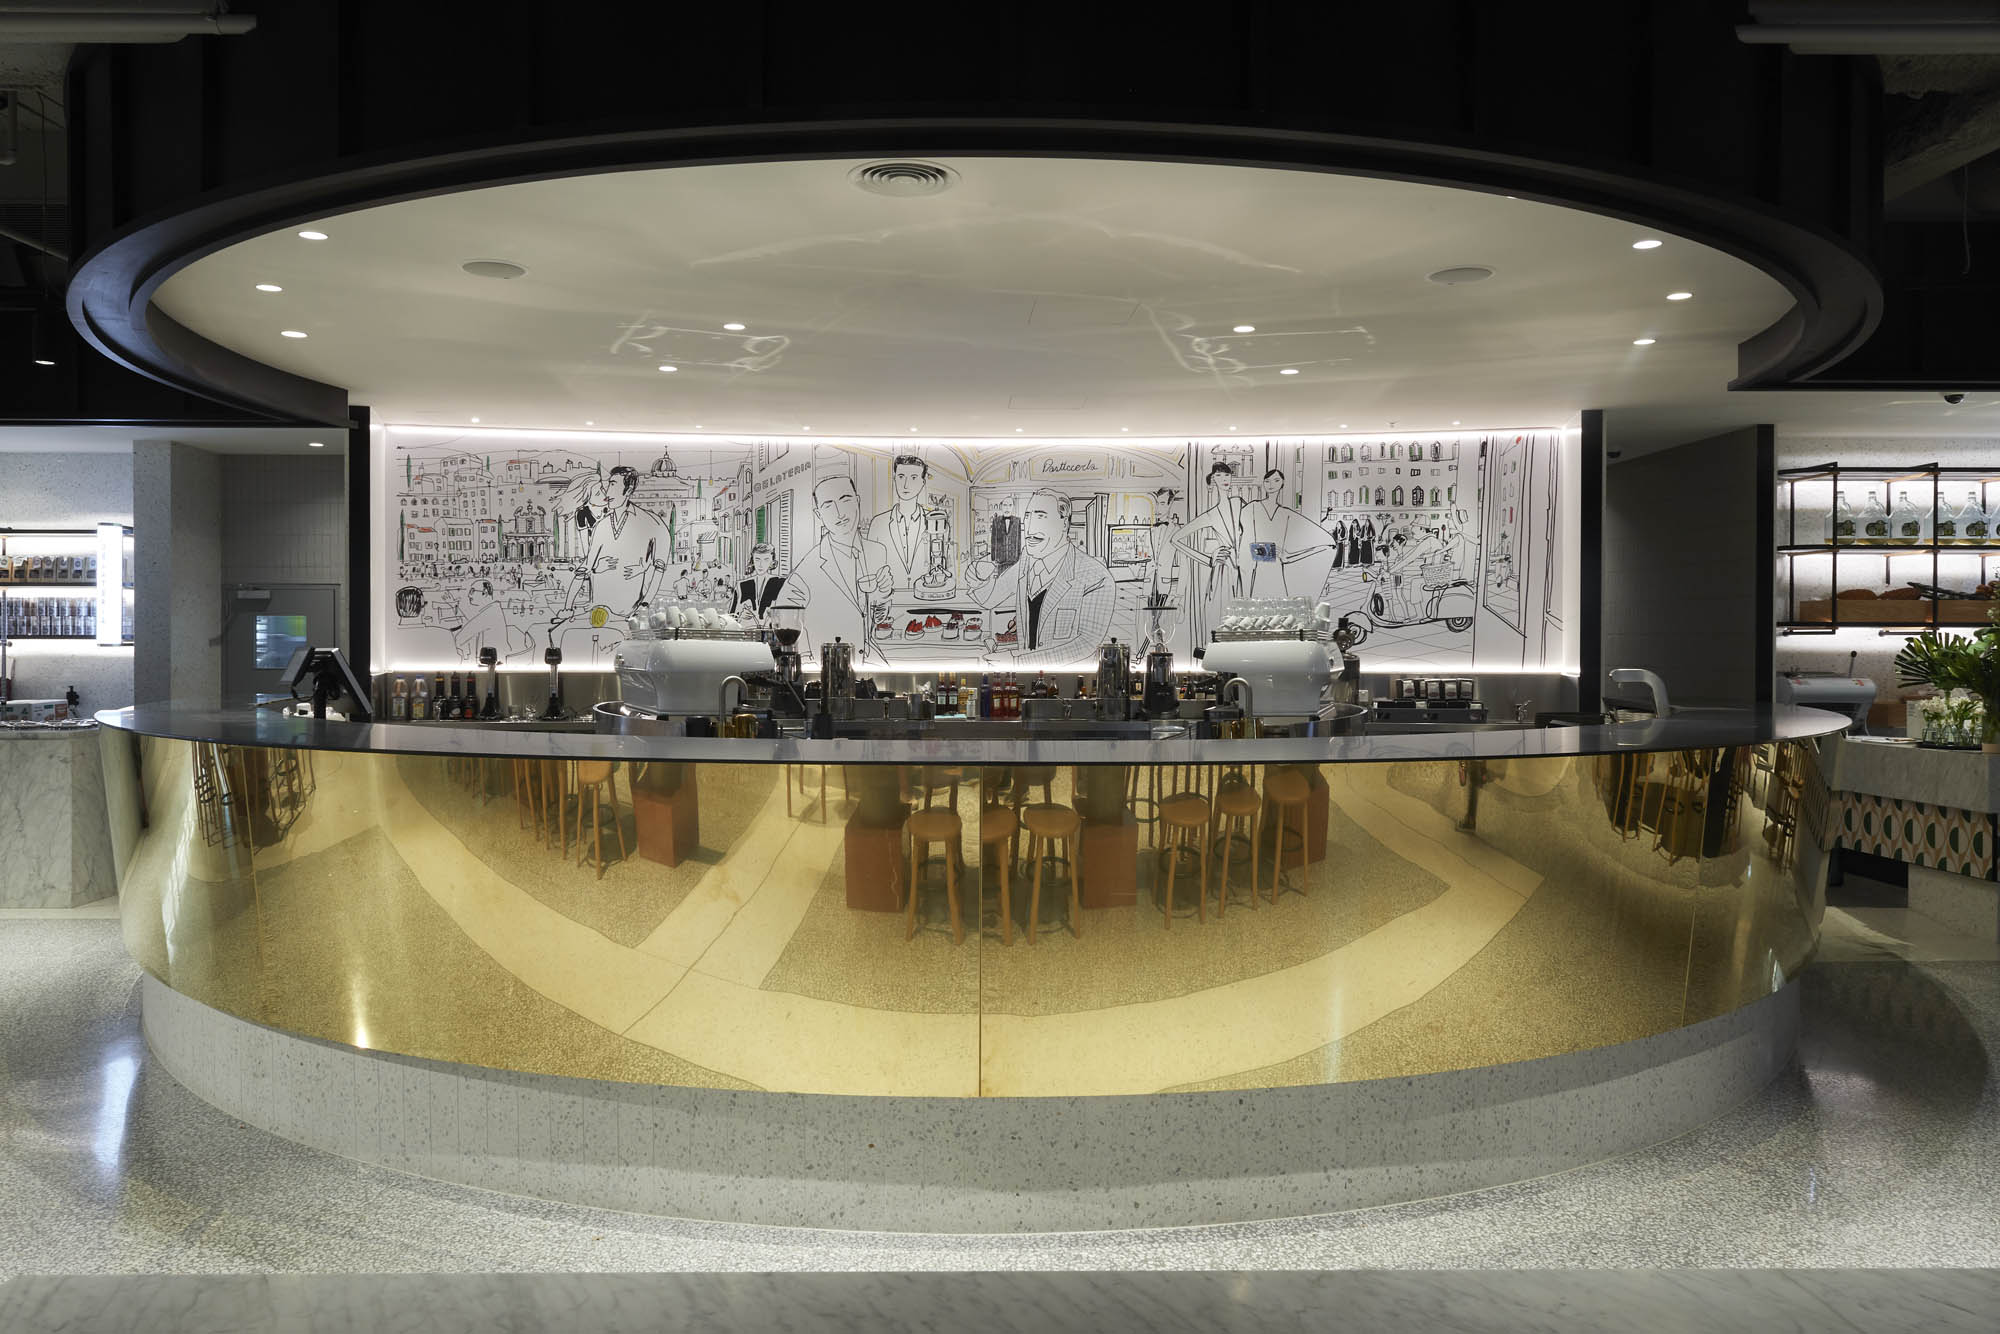 brunetti cafe emporium flinders lane hospitality demolition interior construction vic gold bar italian artwork coffee machine alcohol reflection